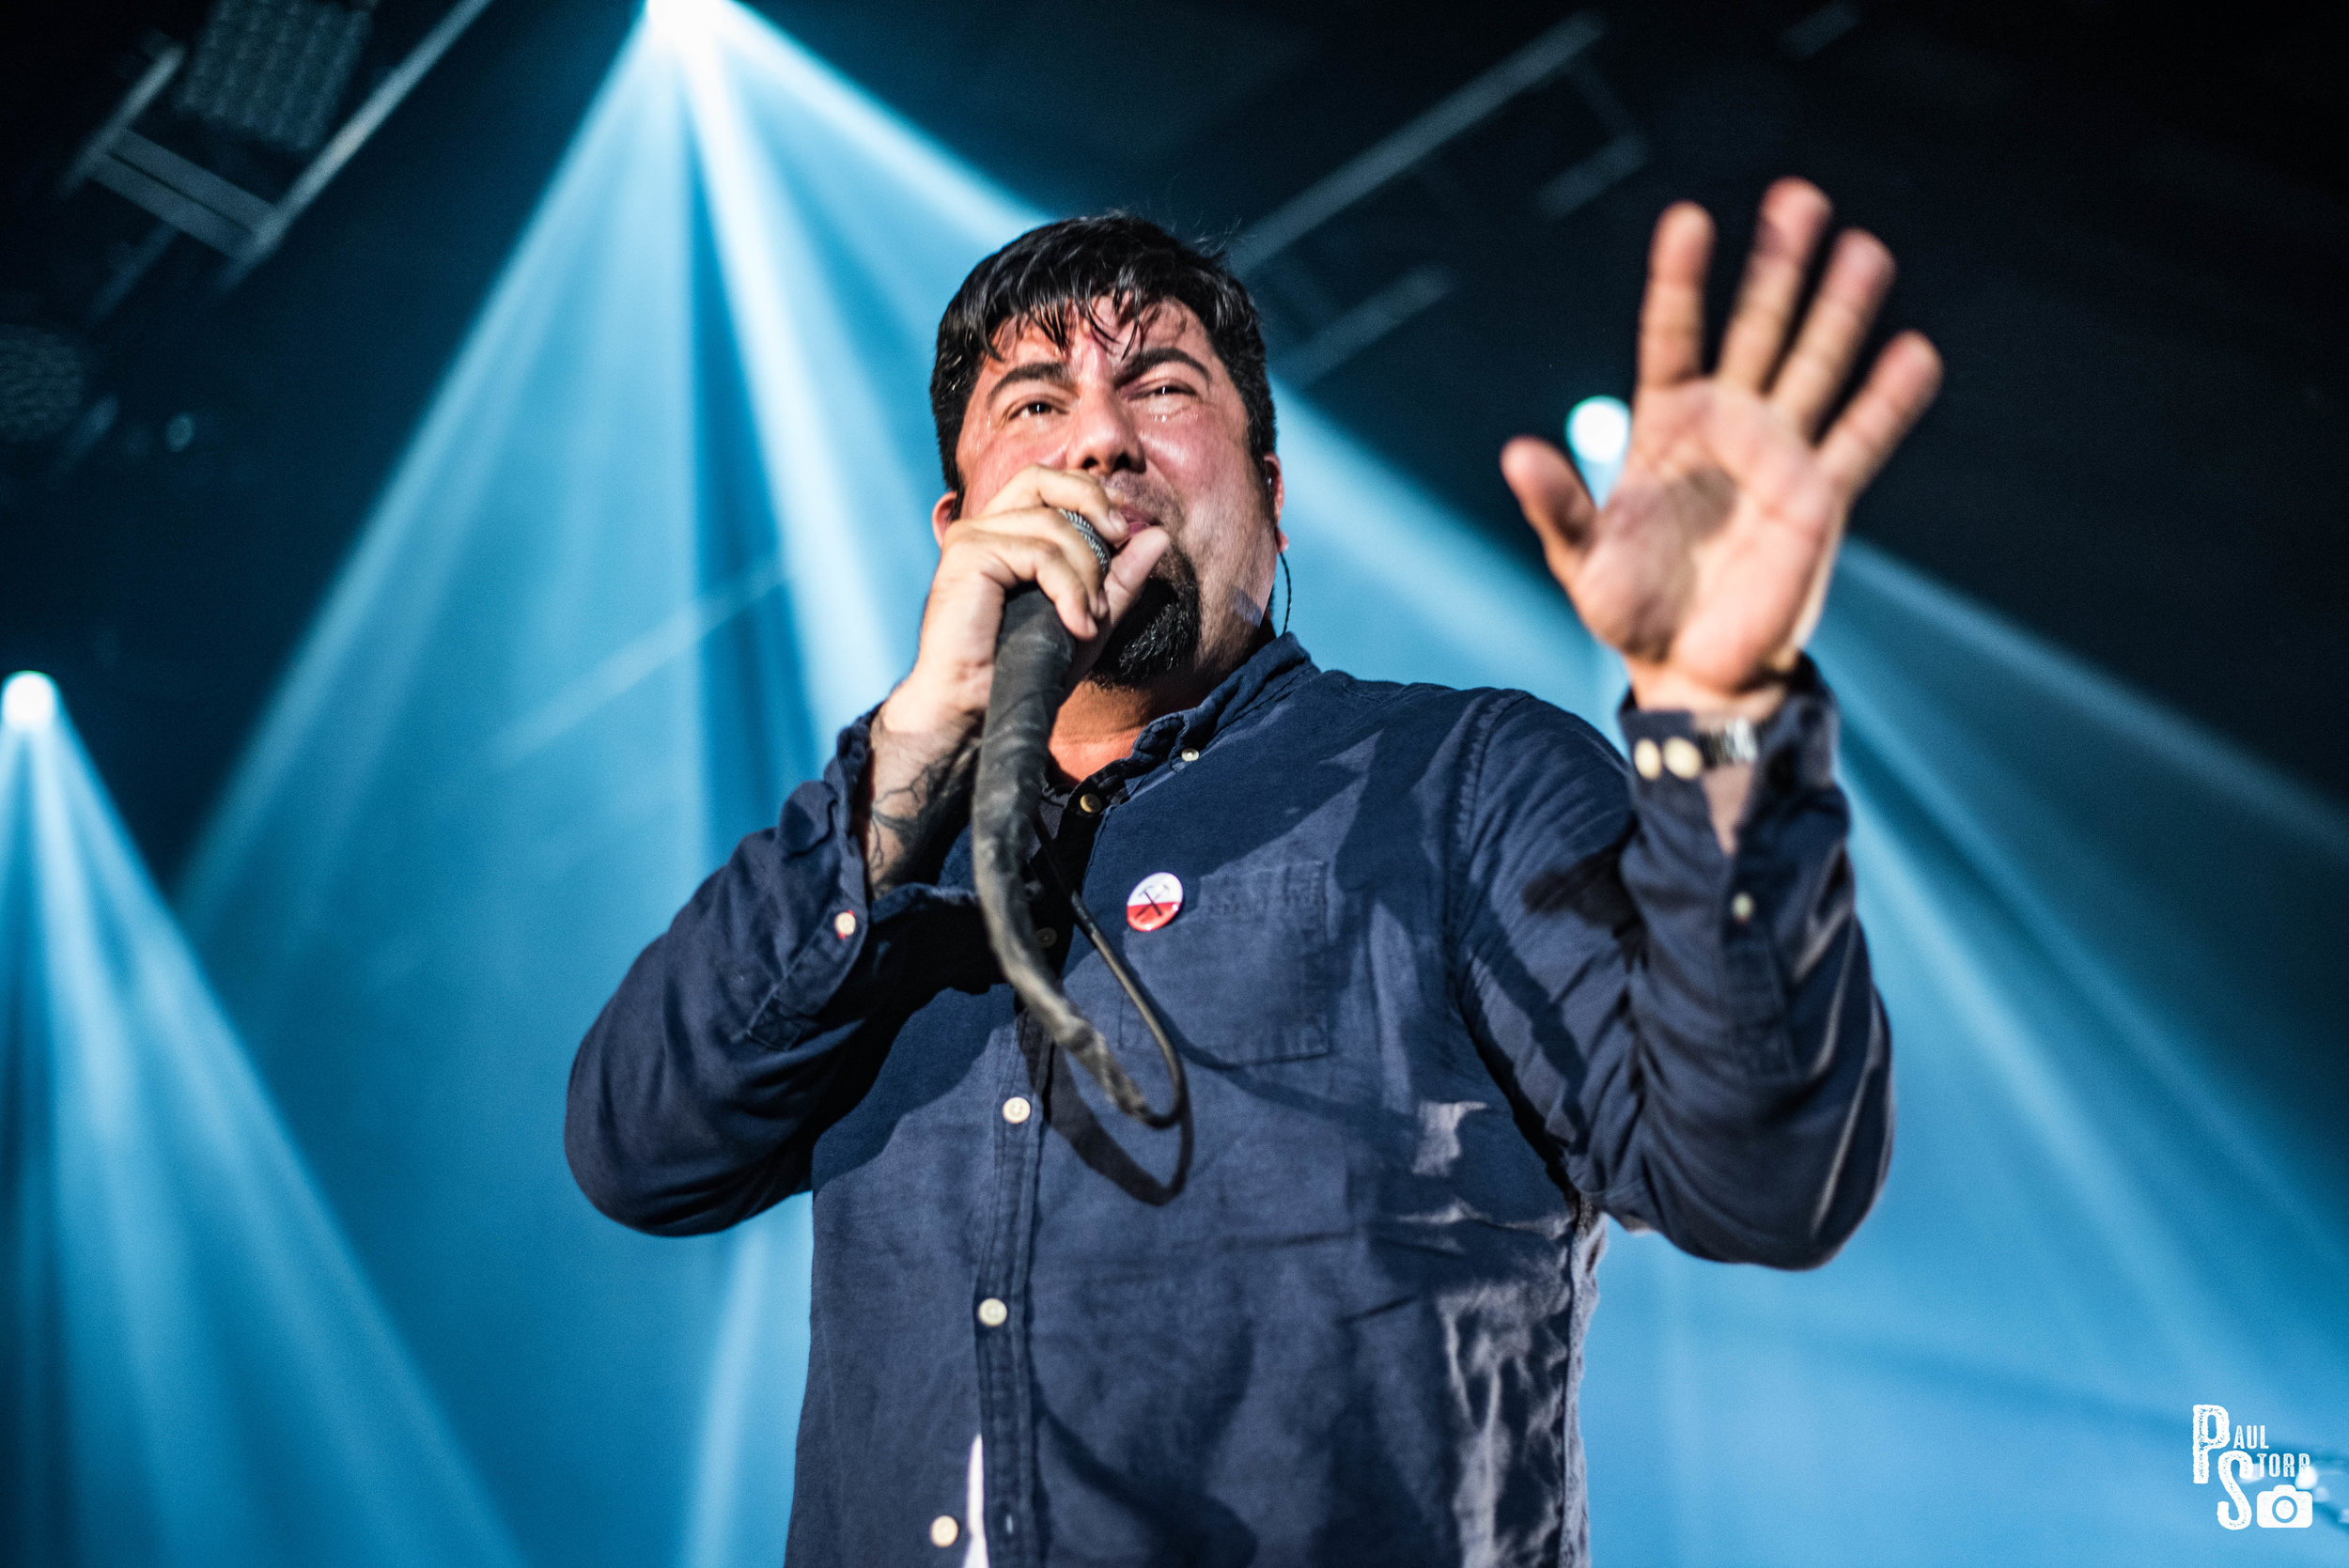 DEFTONES PERFORMING AT GLASGOW'S SEC HALL 3 - 07.05.2017  PICTURE BY: PAUL STORR PHOTOGRAPHY